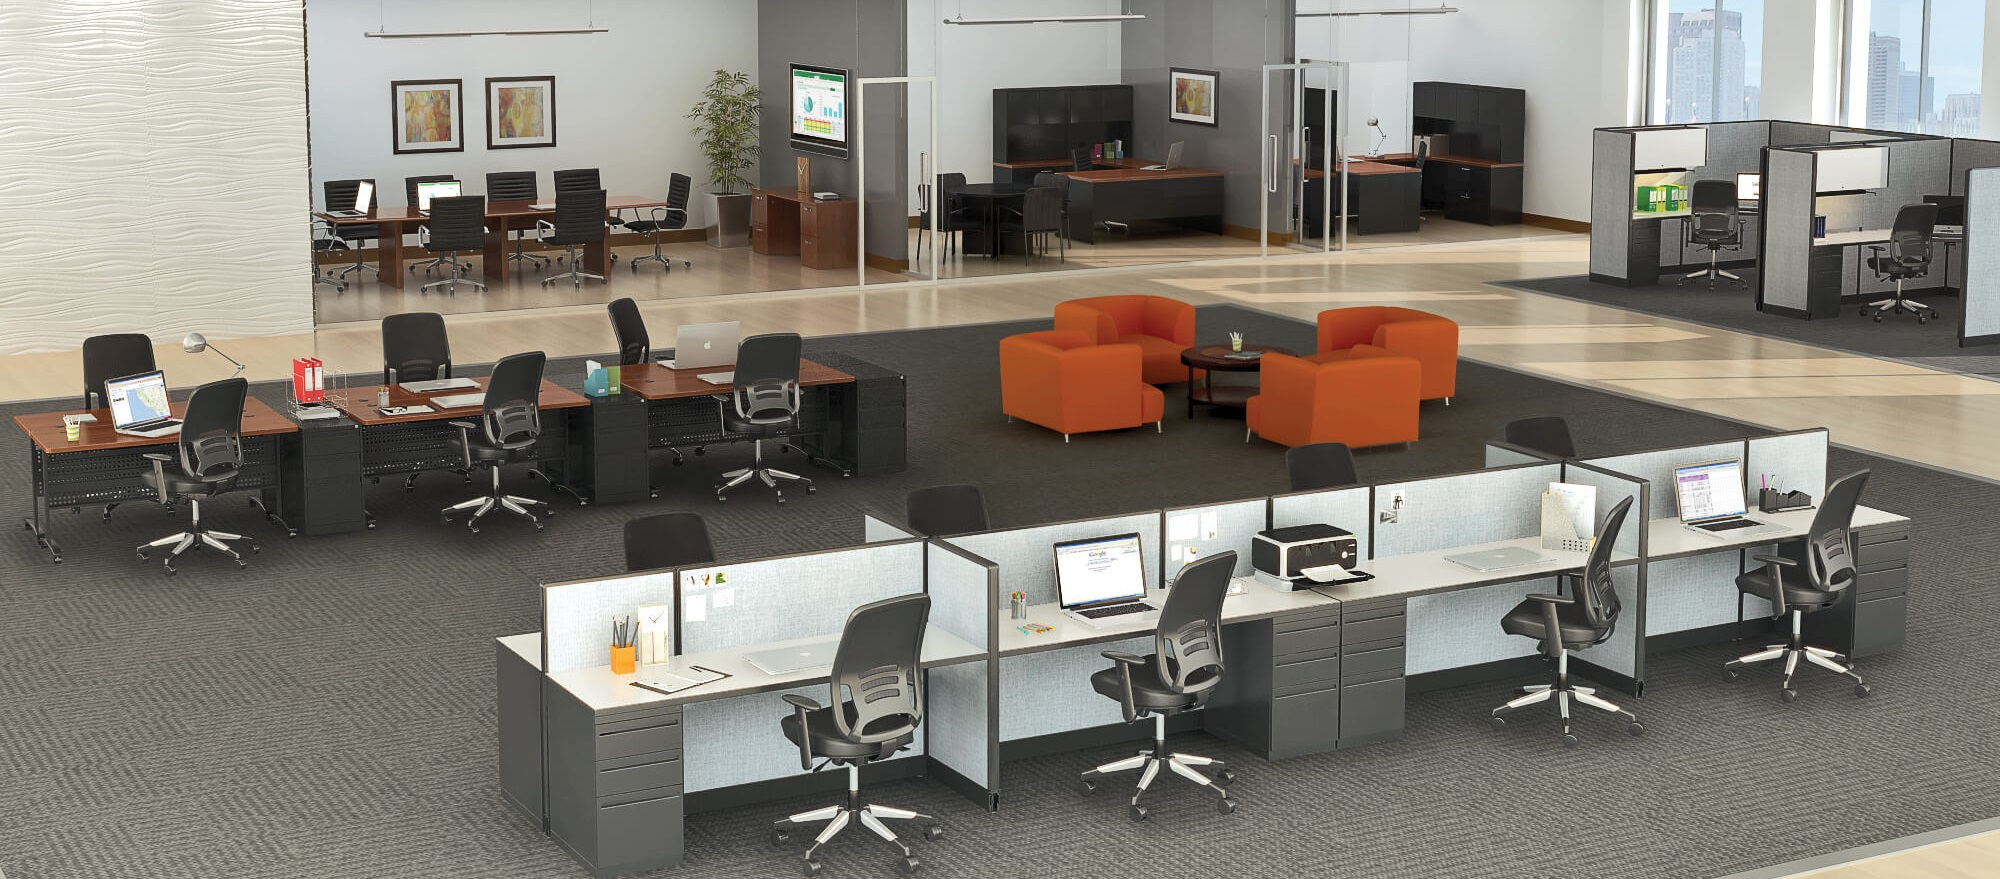 office staging commercial staging rental brook furniture rental rh bfr com rental office furniture montreal rental office furniture oregon